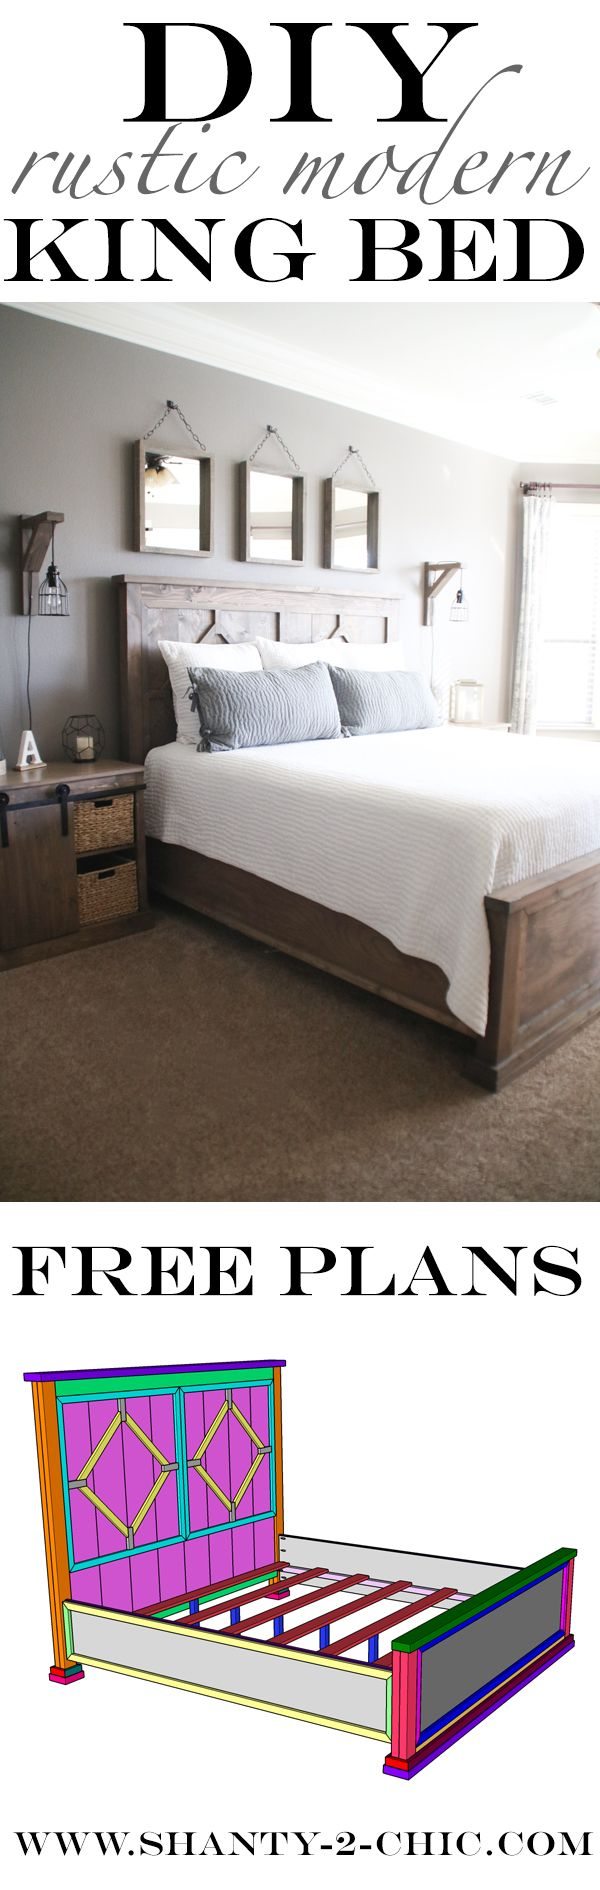 51 51 diy headboard ideas to make the bed of your dreams snappy pixels - Diy Rustic Modern King Bed